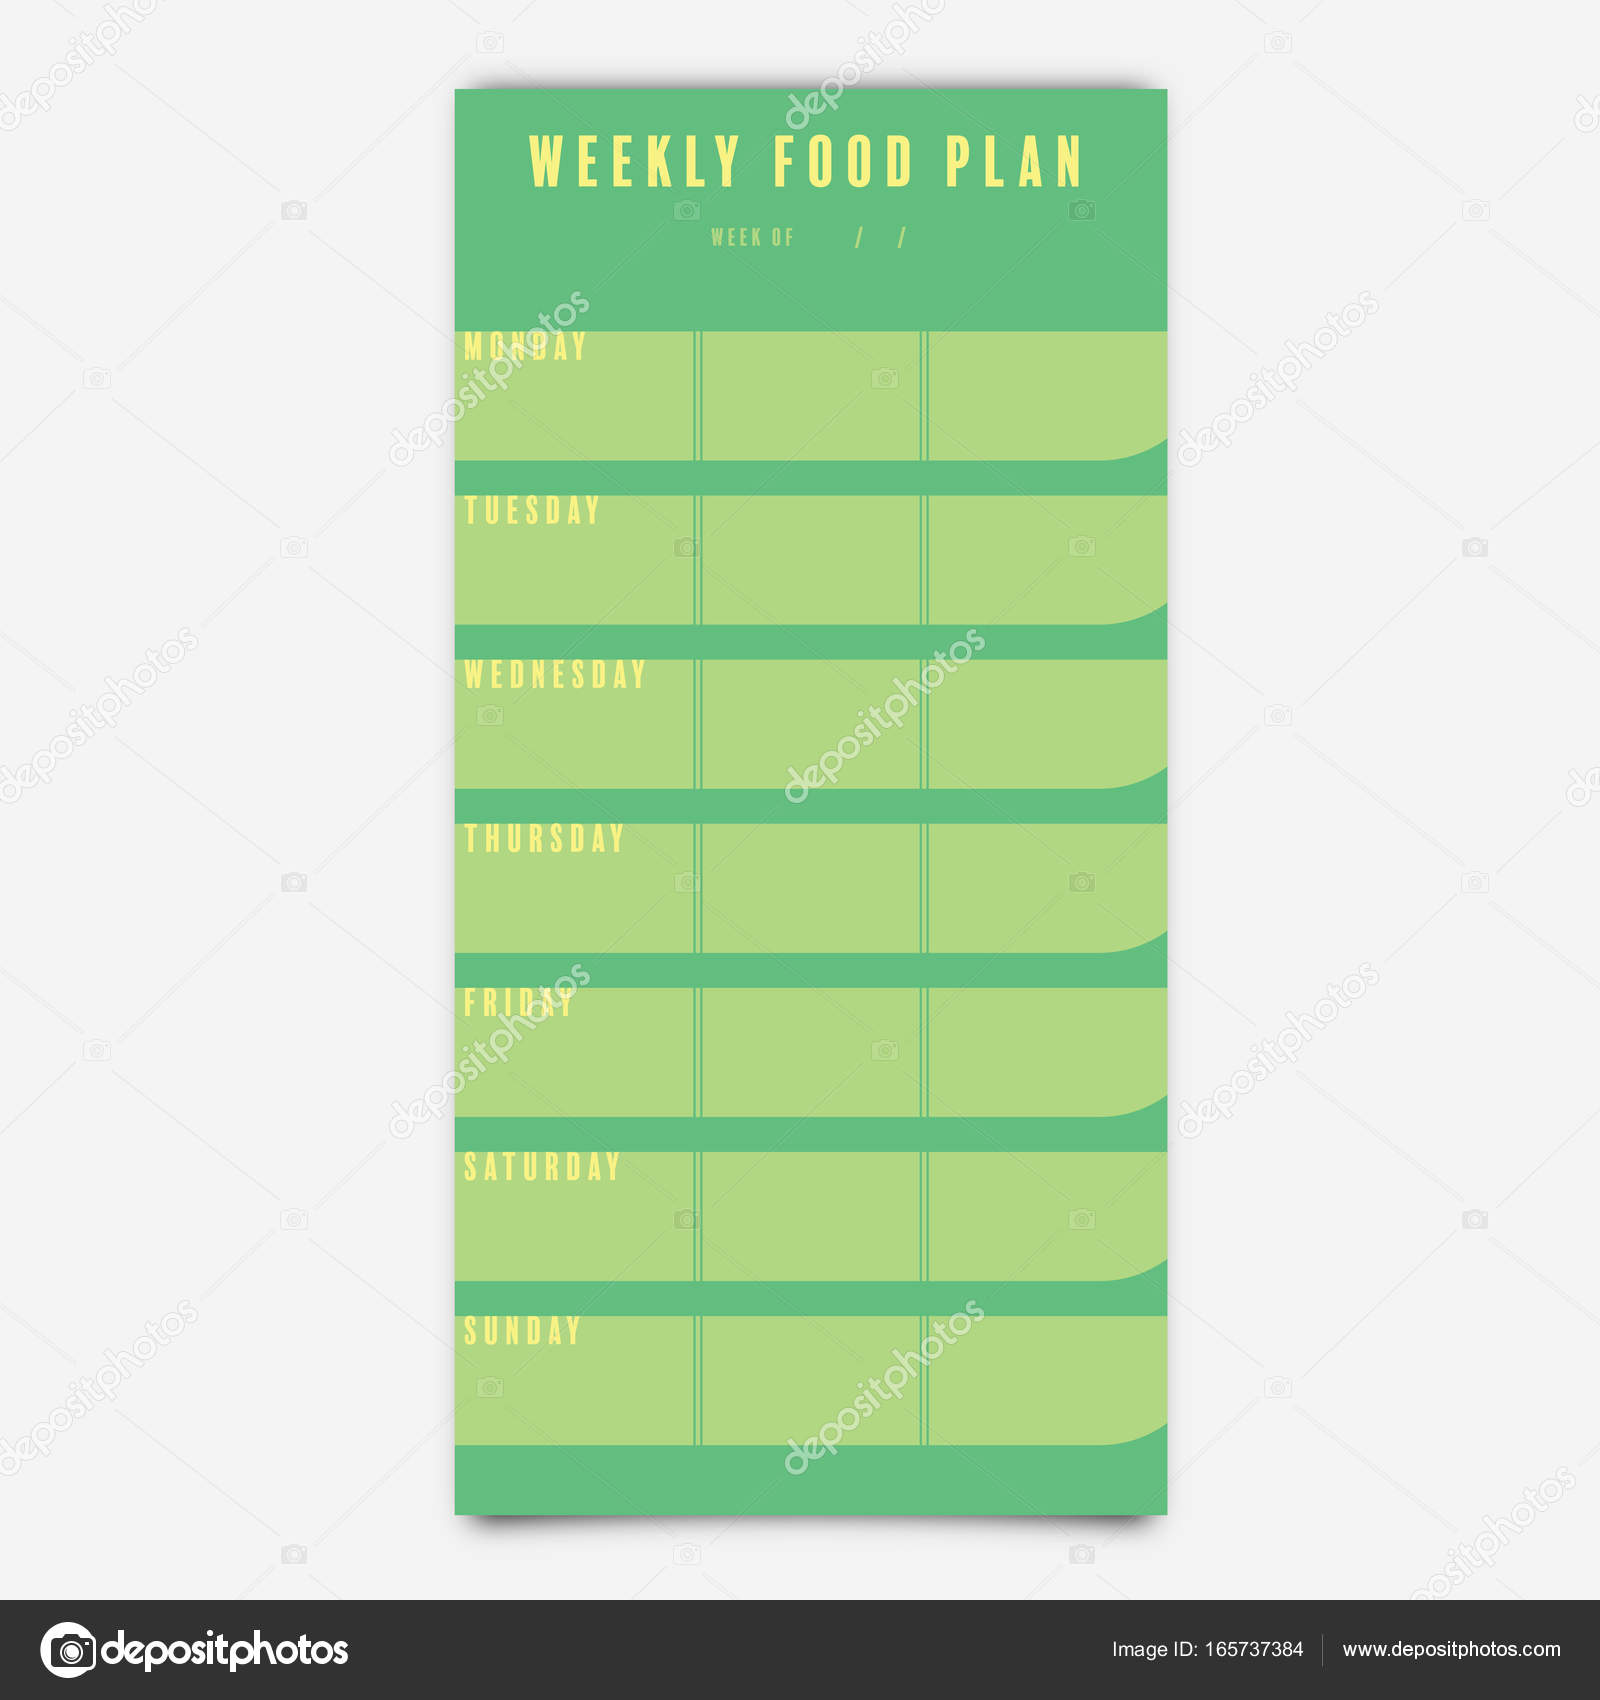 Food Planner Template from st3.depositphotos.com